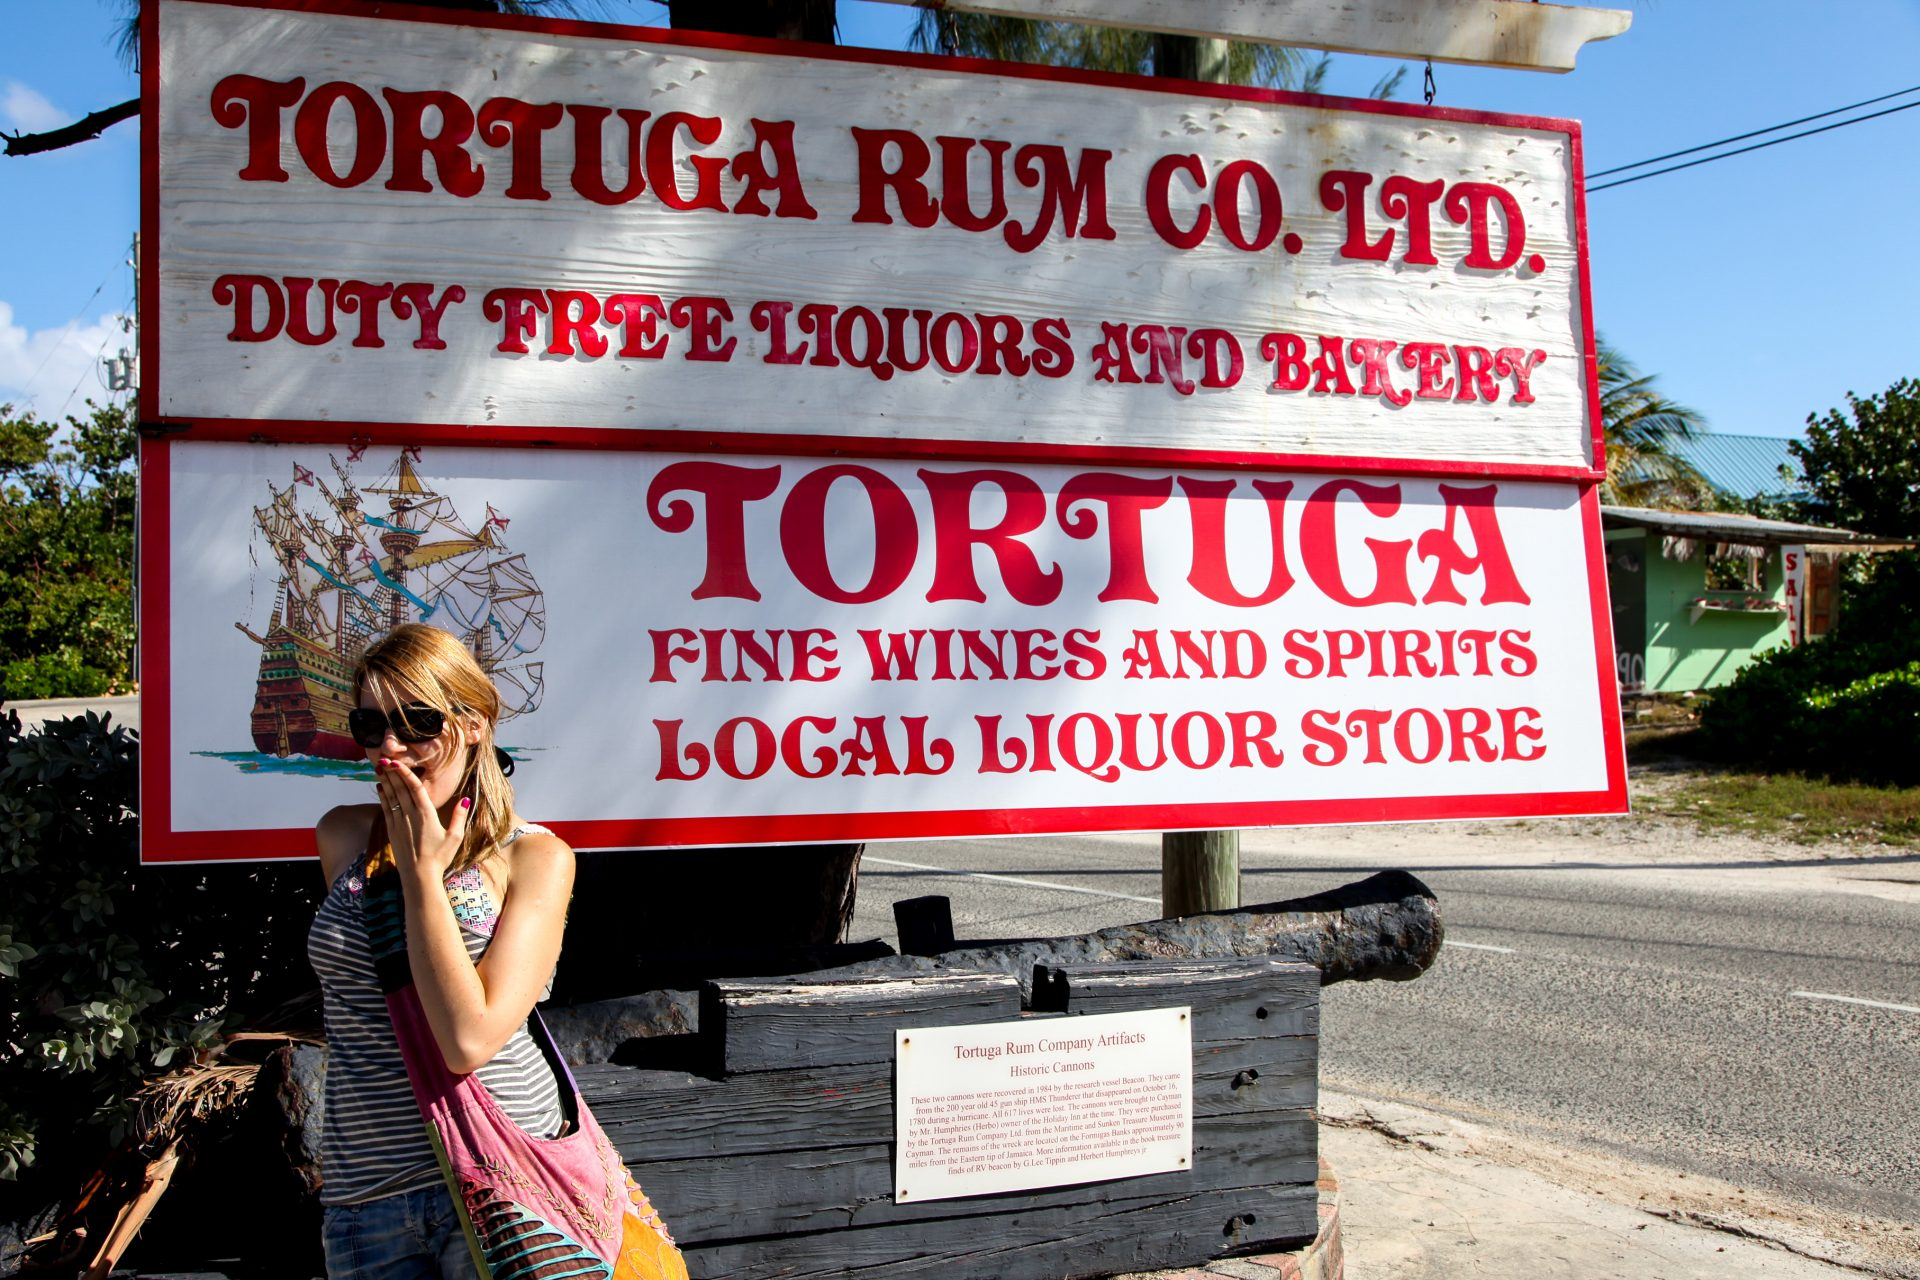 Tortuga rum factory Cayman Islands